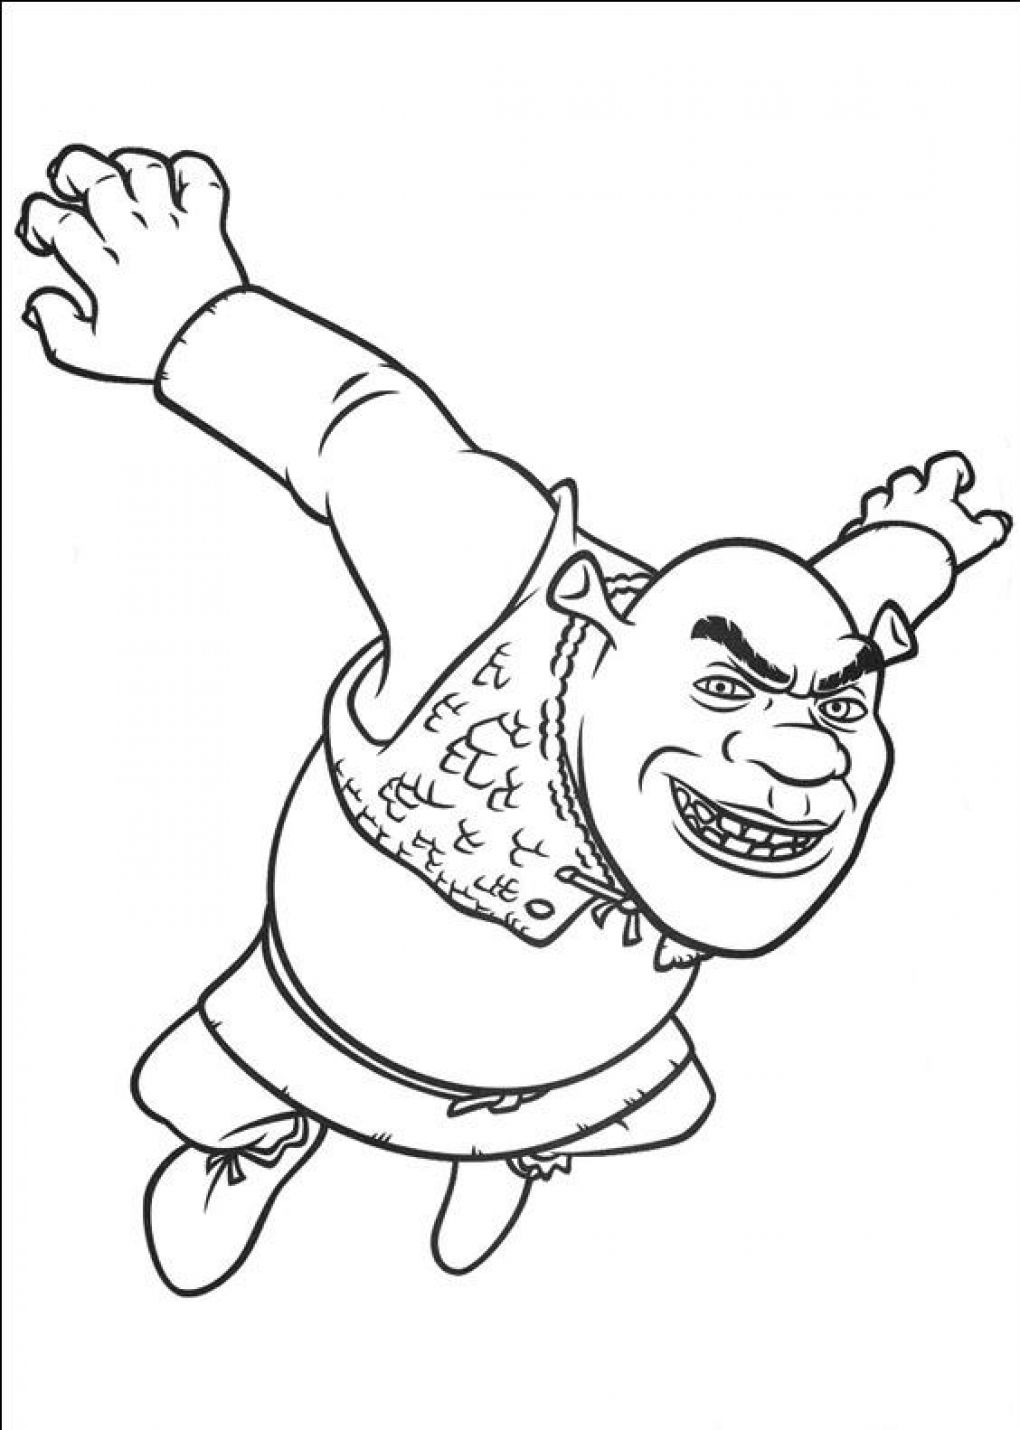 coloring pages shrek - photo#25